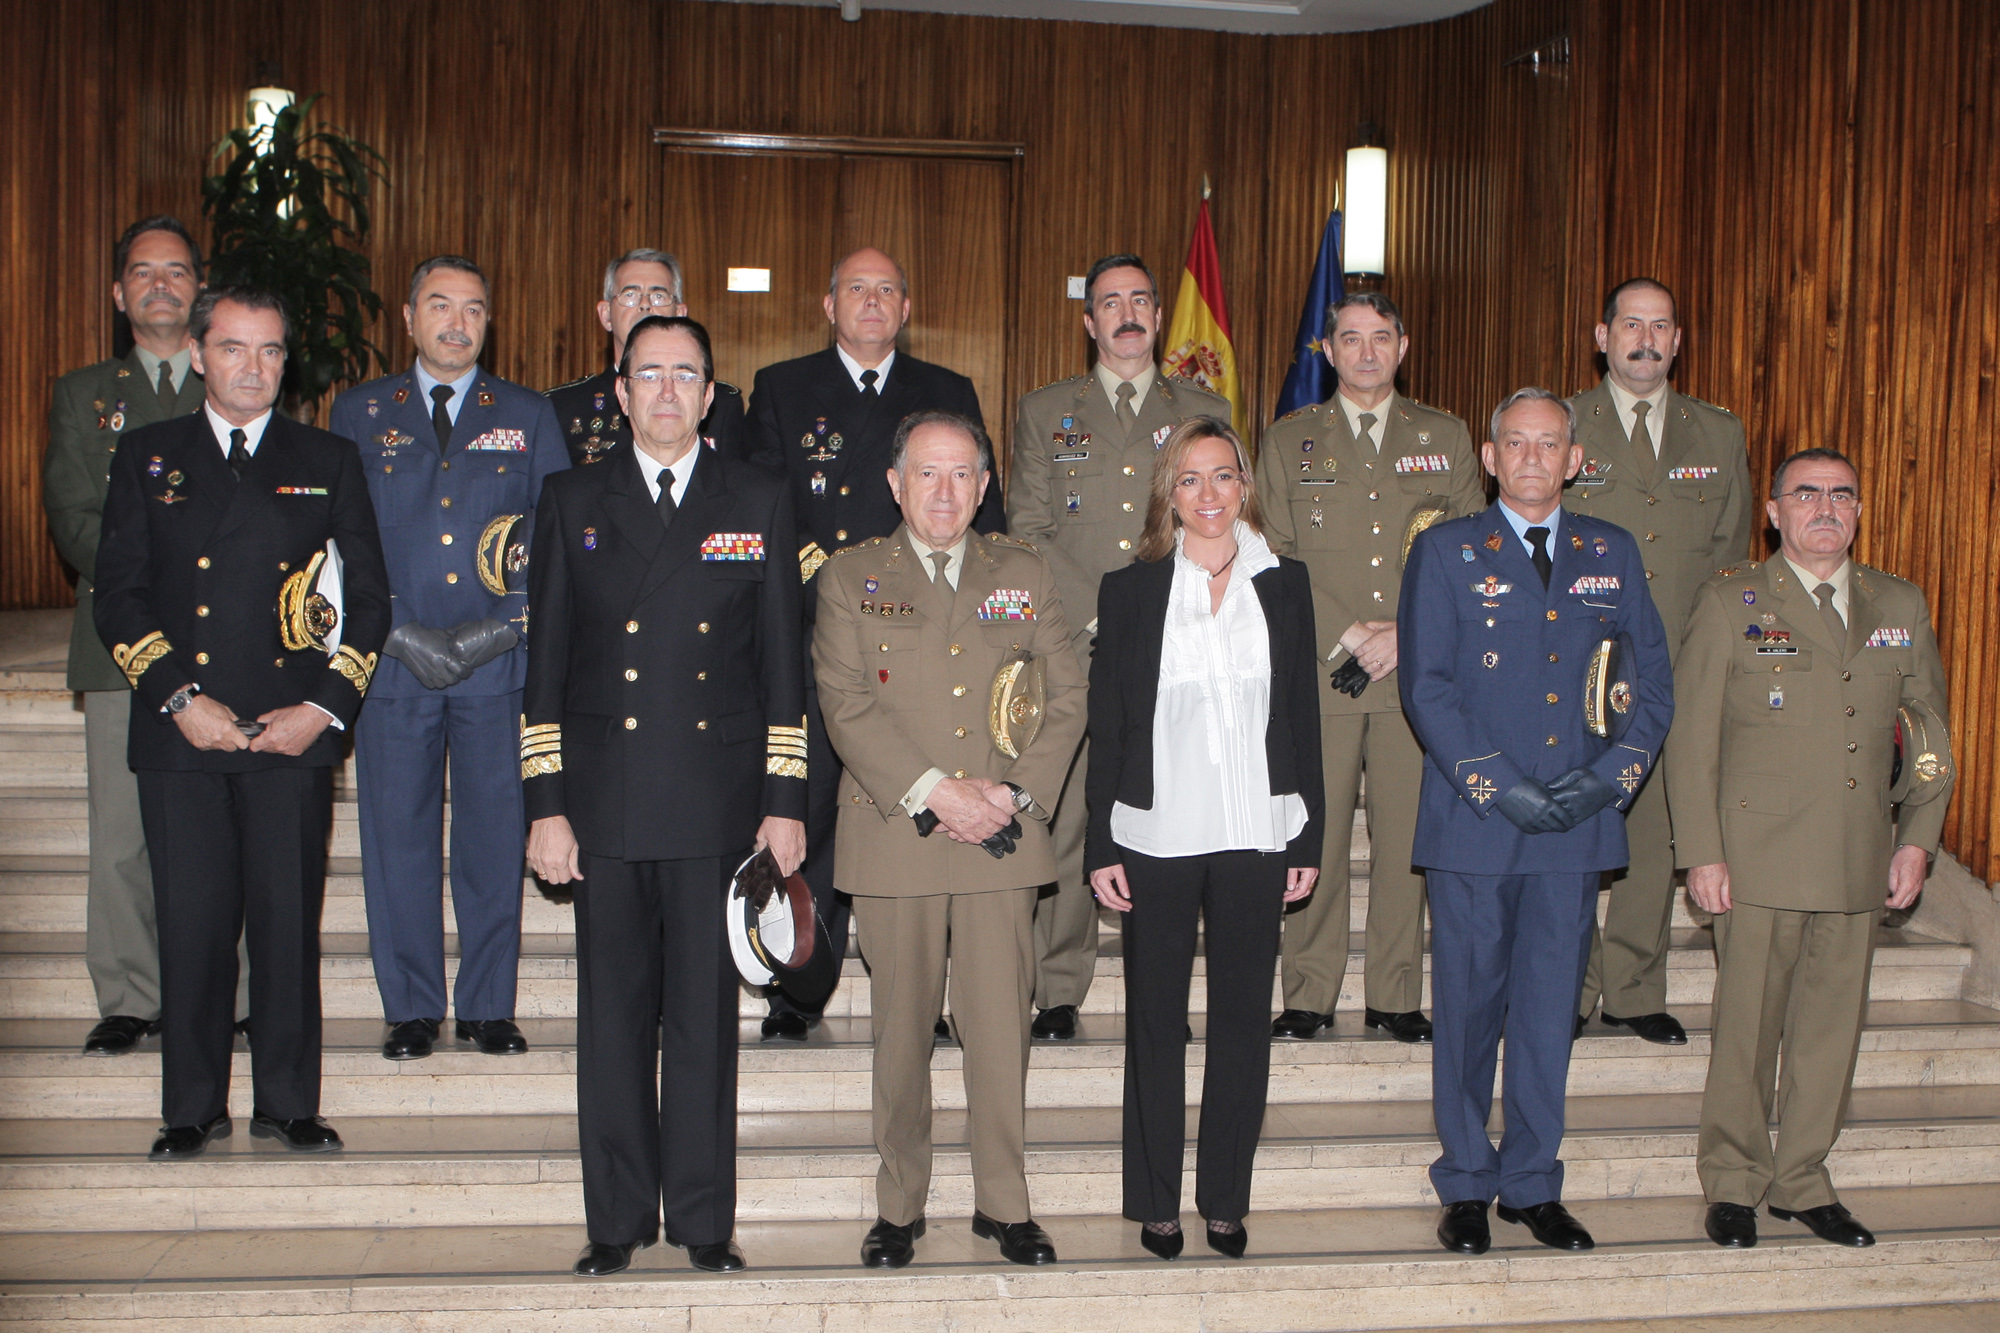 Foto de familia con los generales del Estado Mayor de la Defensa